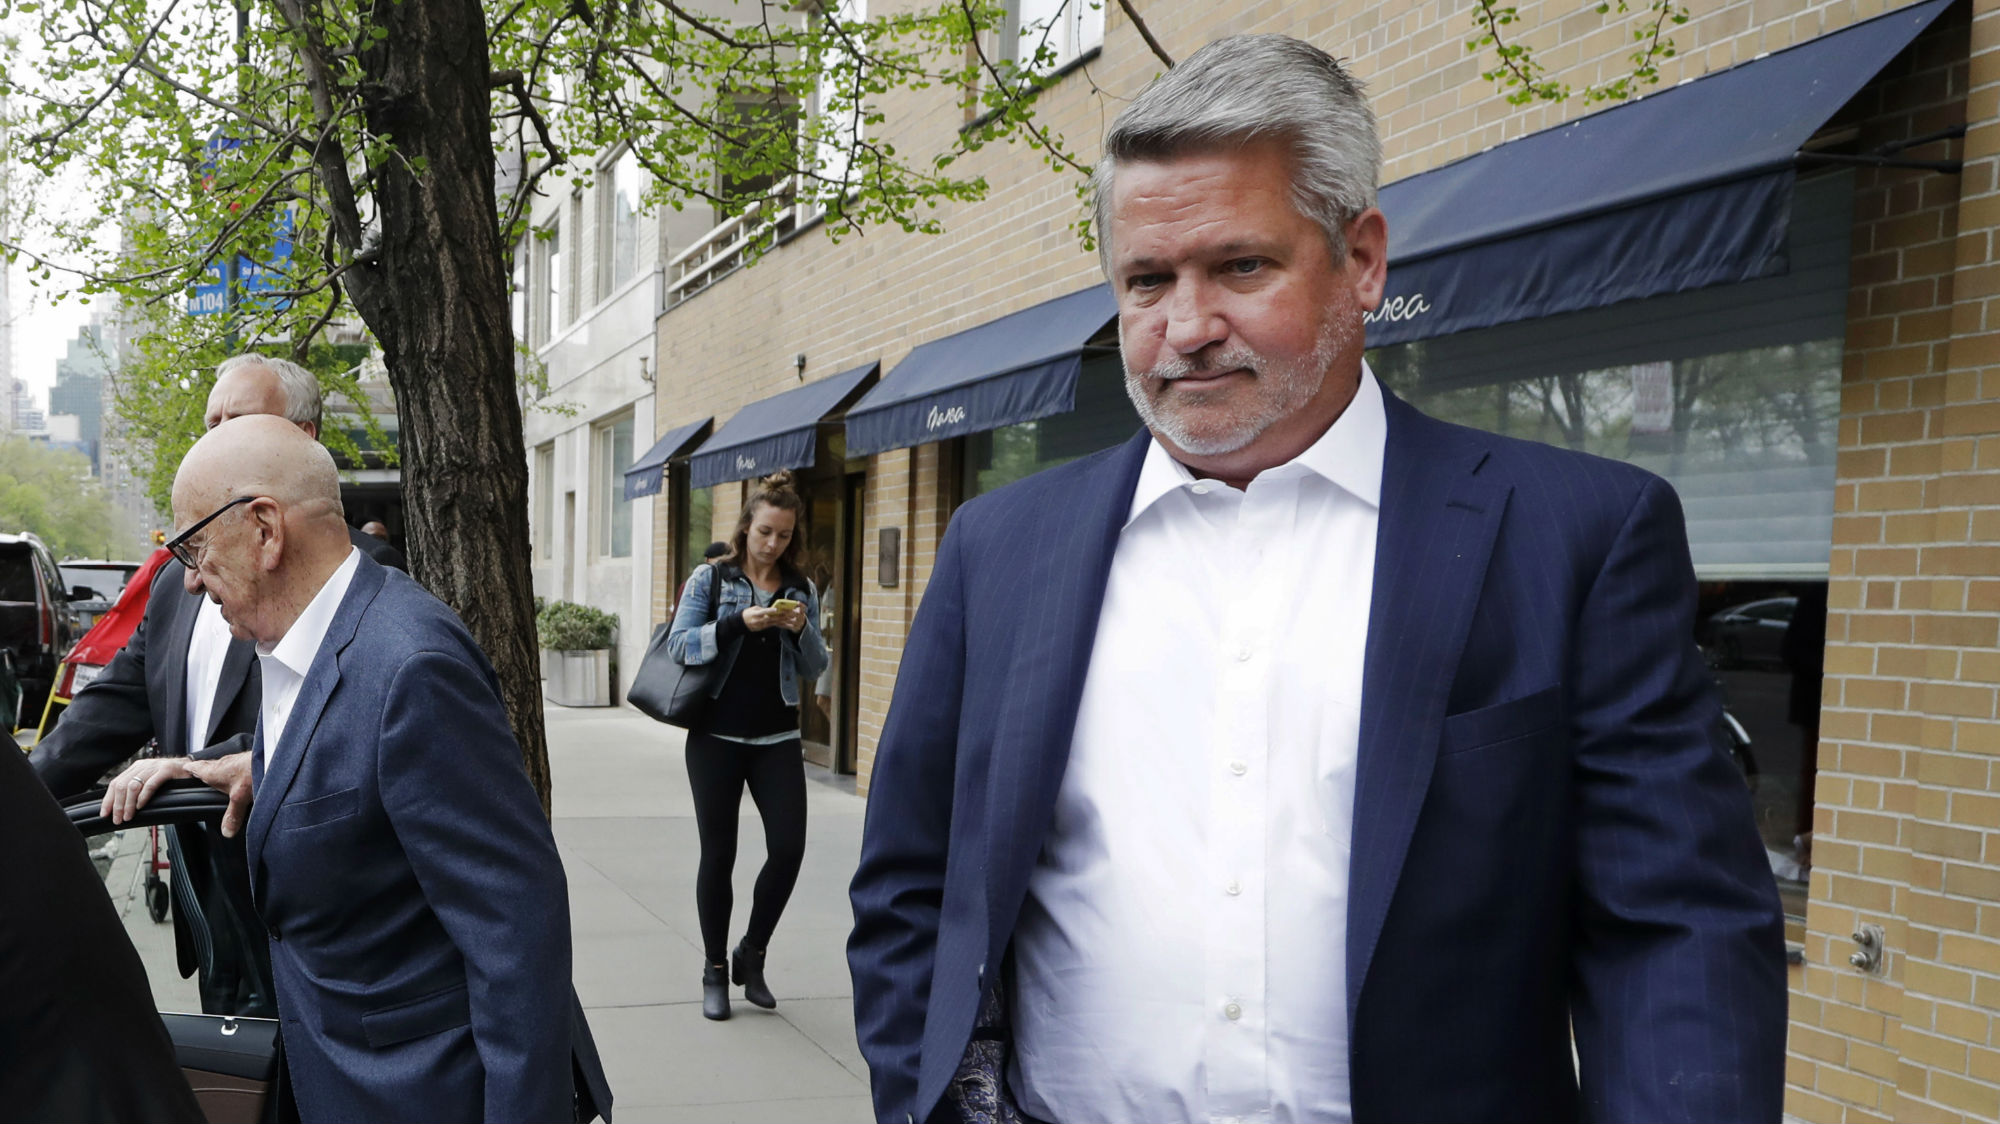 Bill Shine, Formerly of Fox, Named White House Communications Director